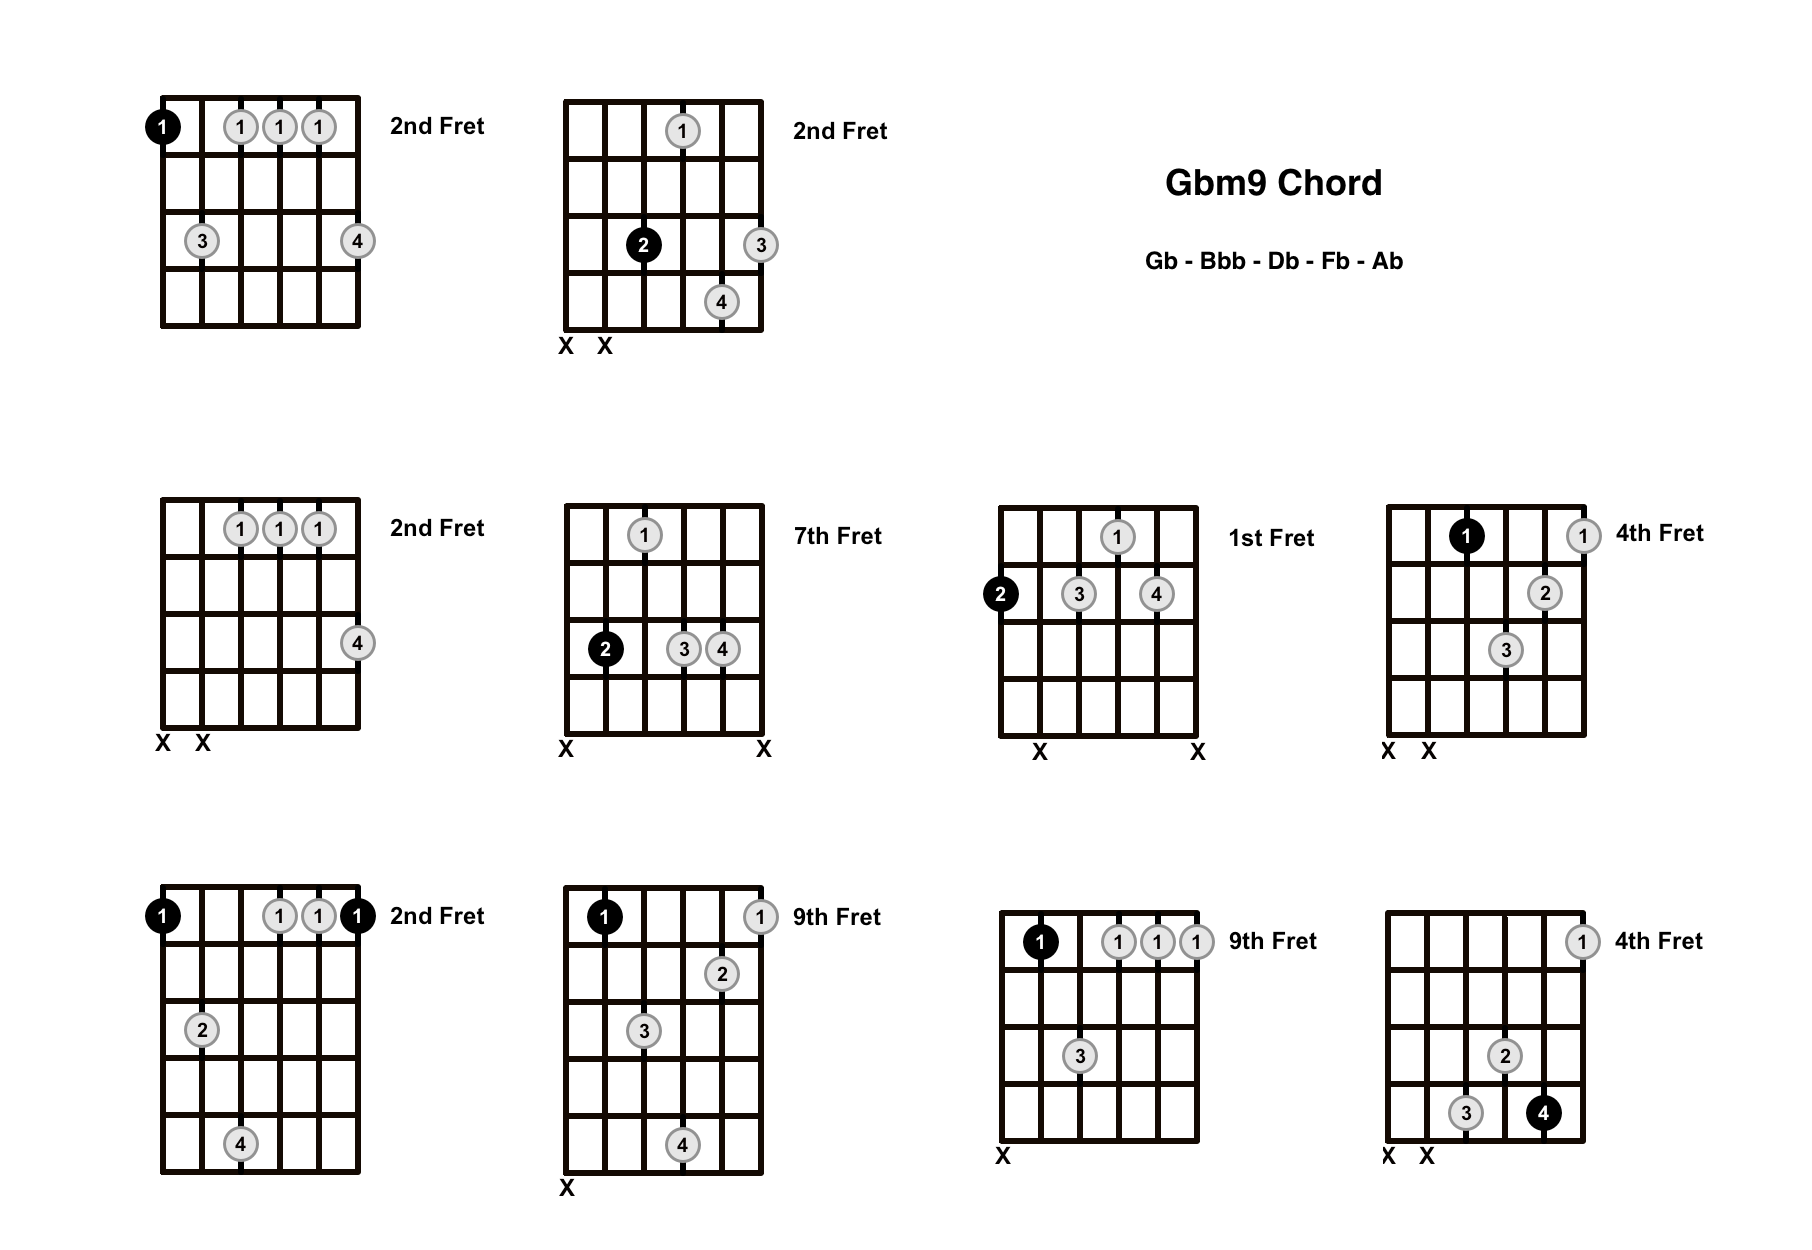 Gbm9 Chord On The Guitar (G Flat Minor 9) – Diagrams, Finger Positions and Theory